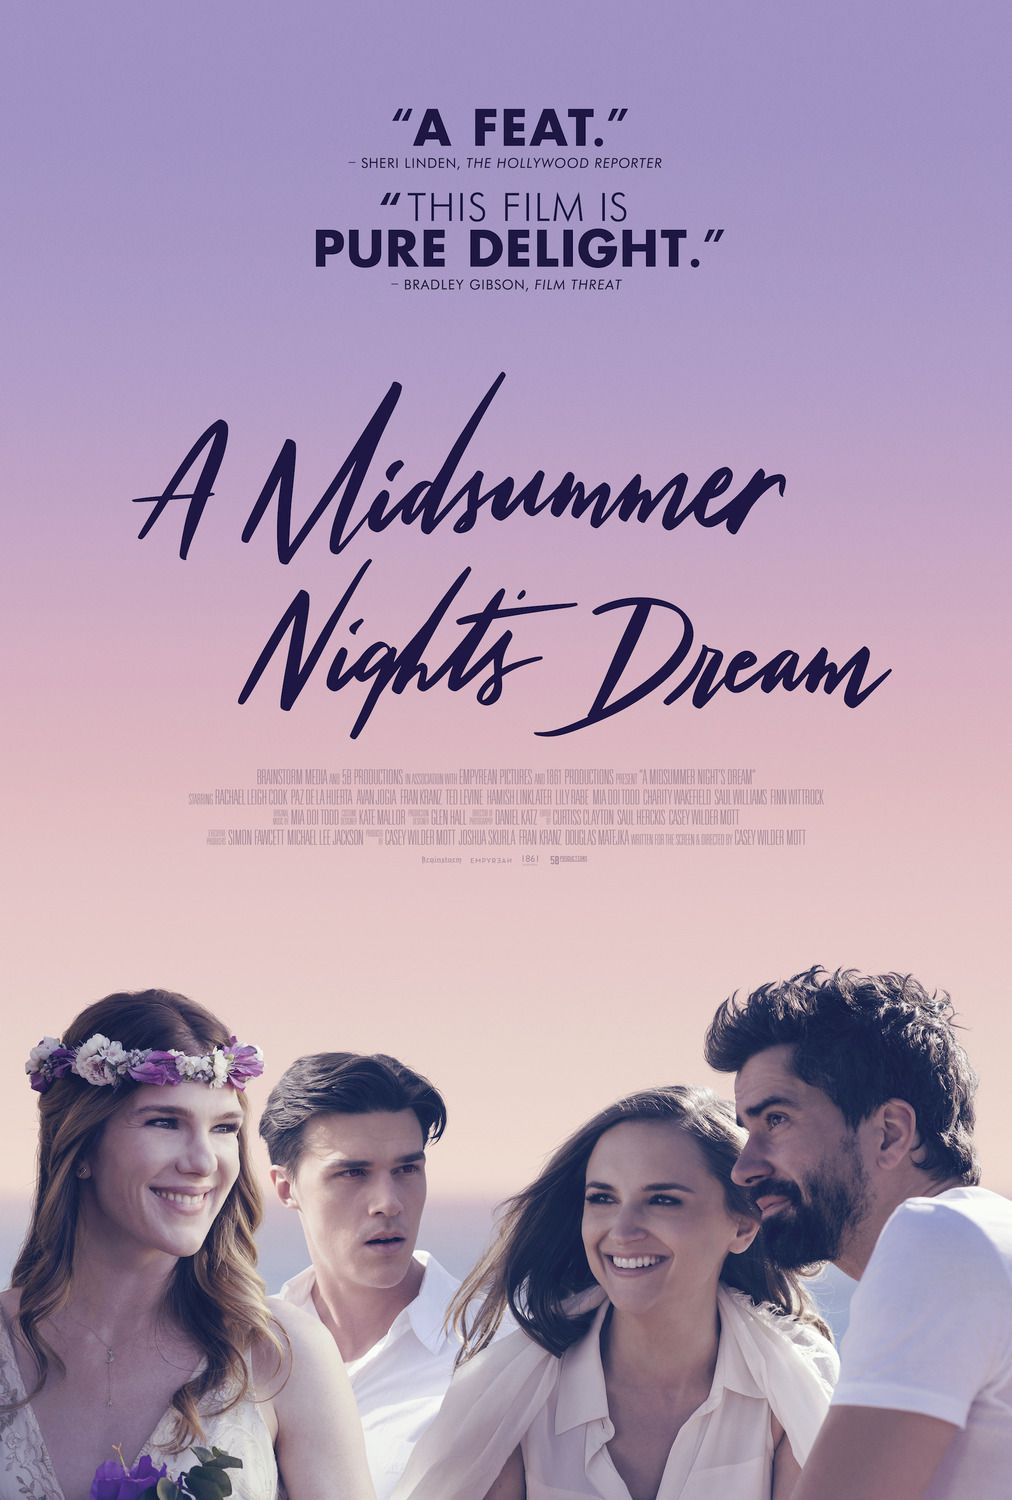 A Midsummer Nights Dream (2018) - Cast: Lily Rabe, Hamish Linklater, Rachael Leigh Cook, Finn Wittrock - film poster